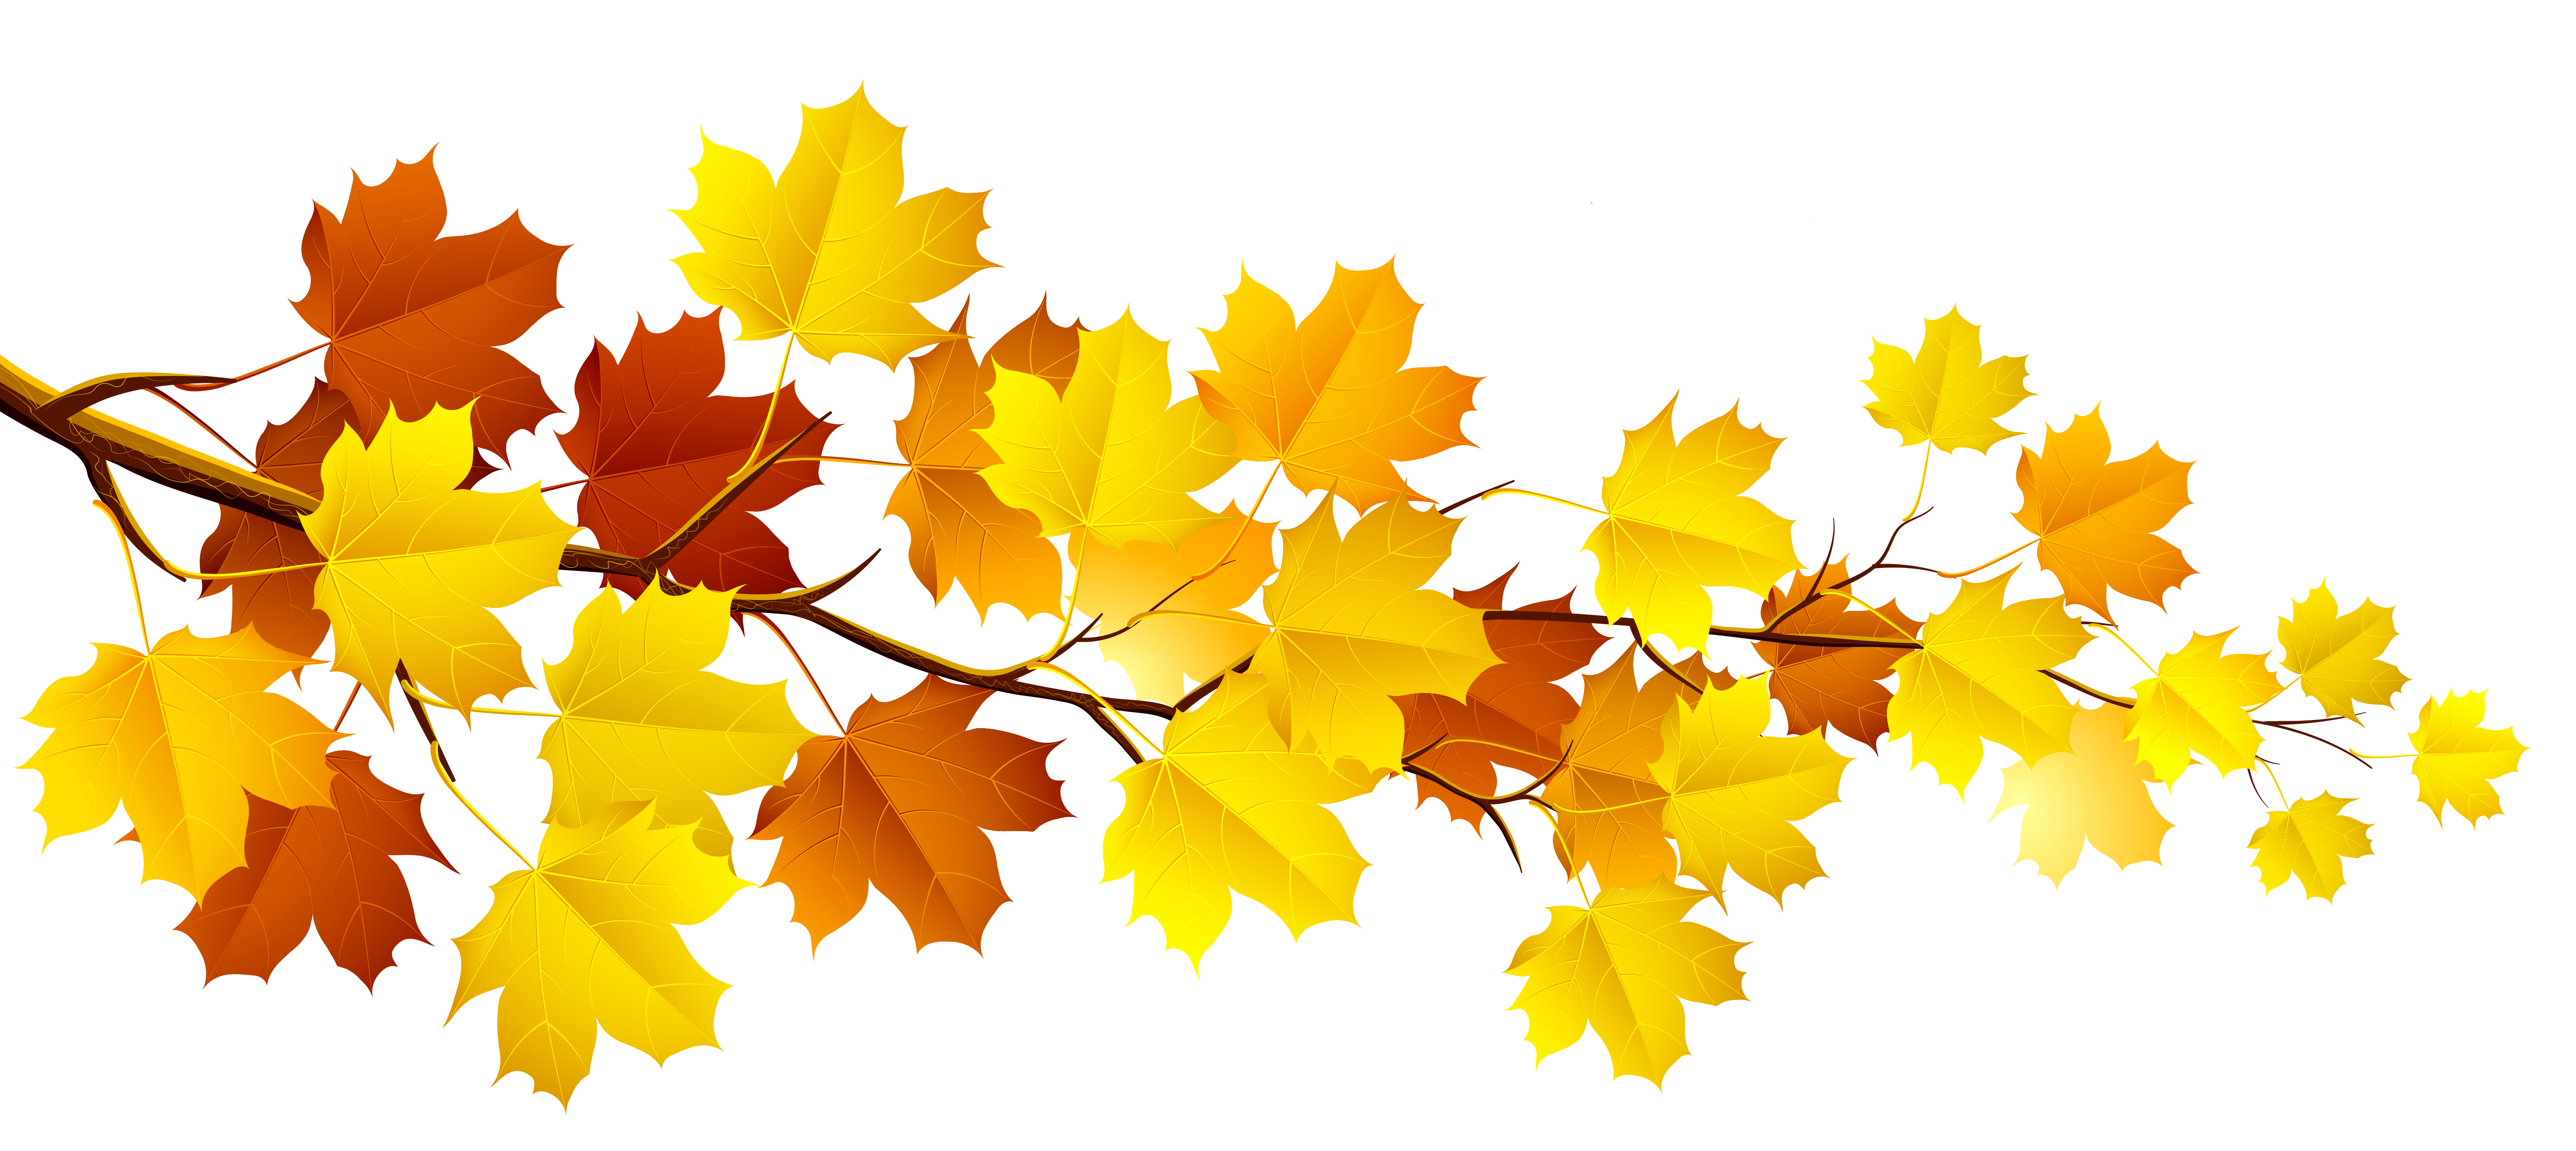 Fall leaves fall clip art autumn clip art leaves clip art clipart 4